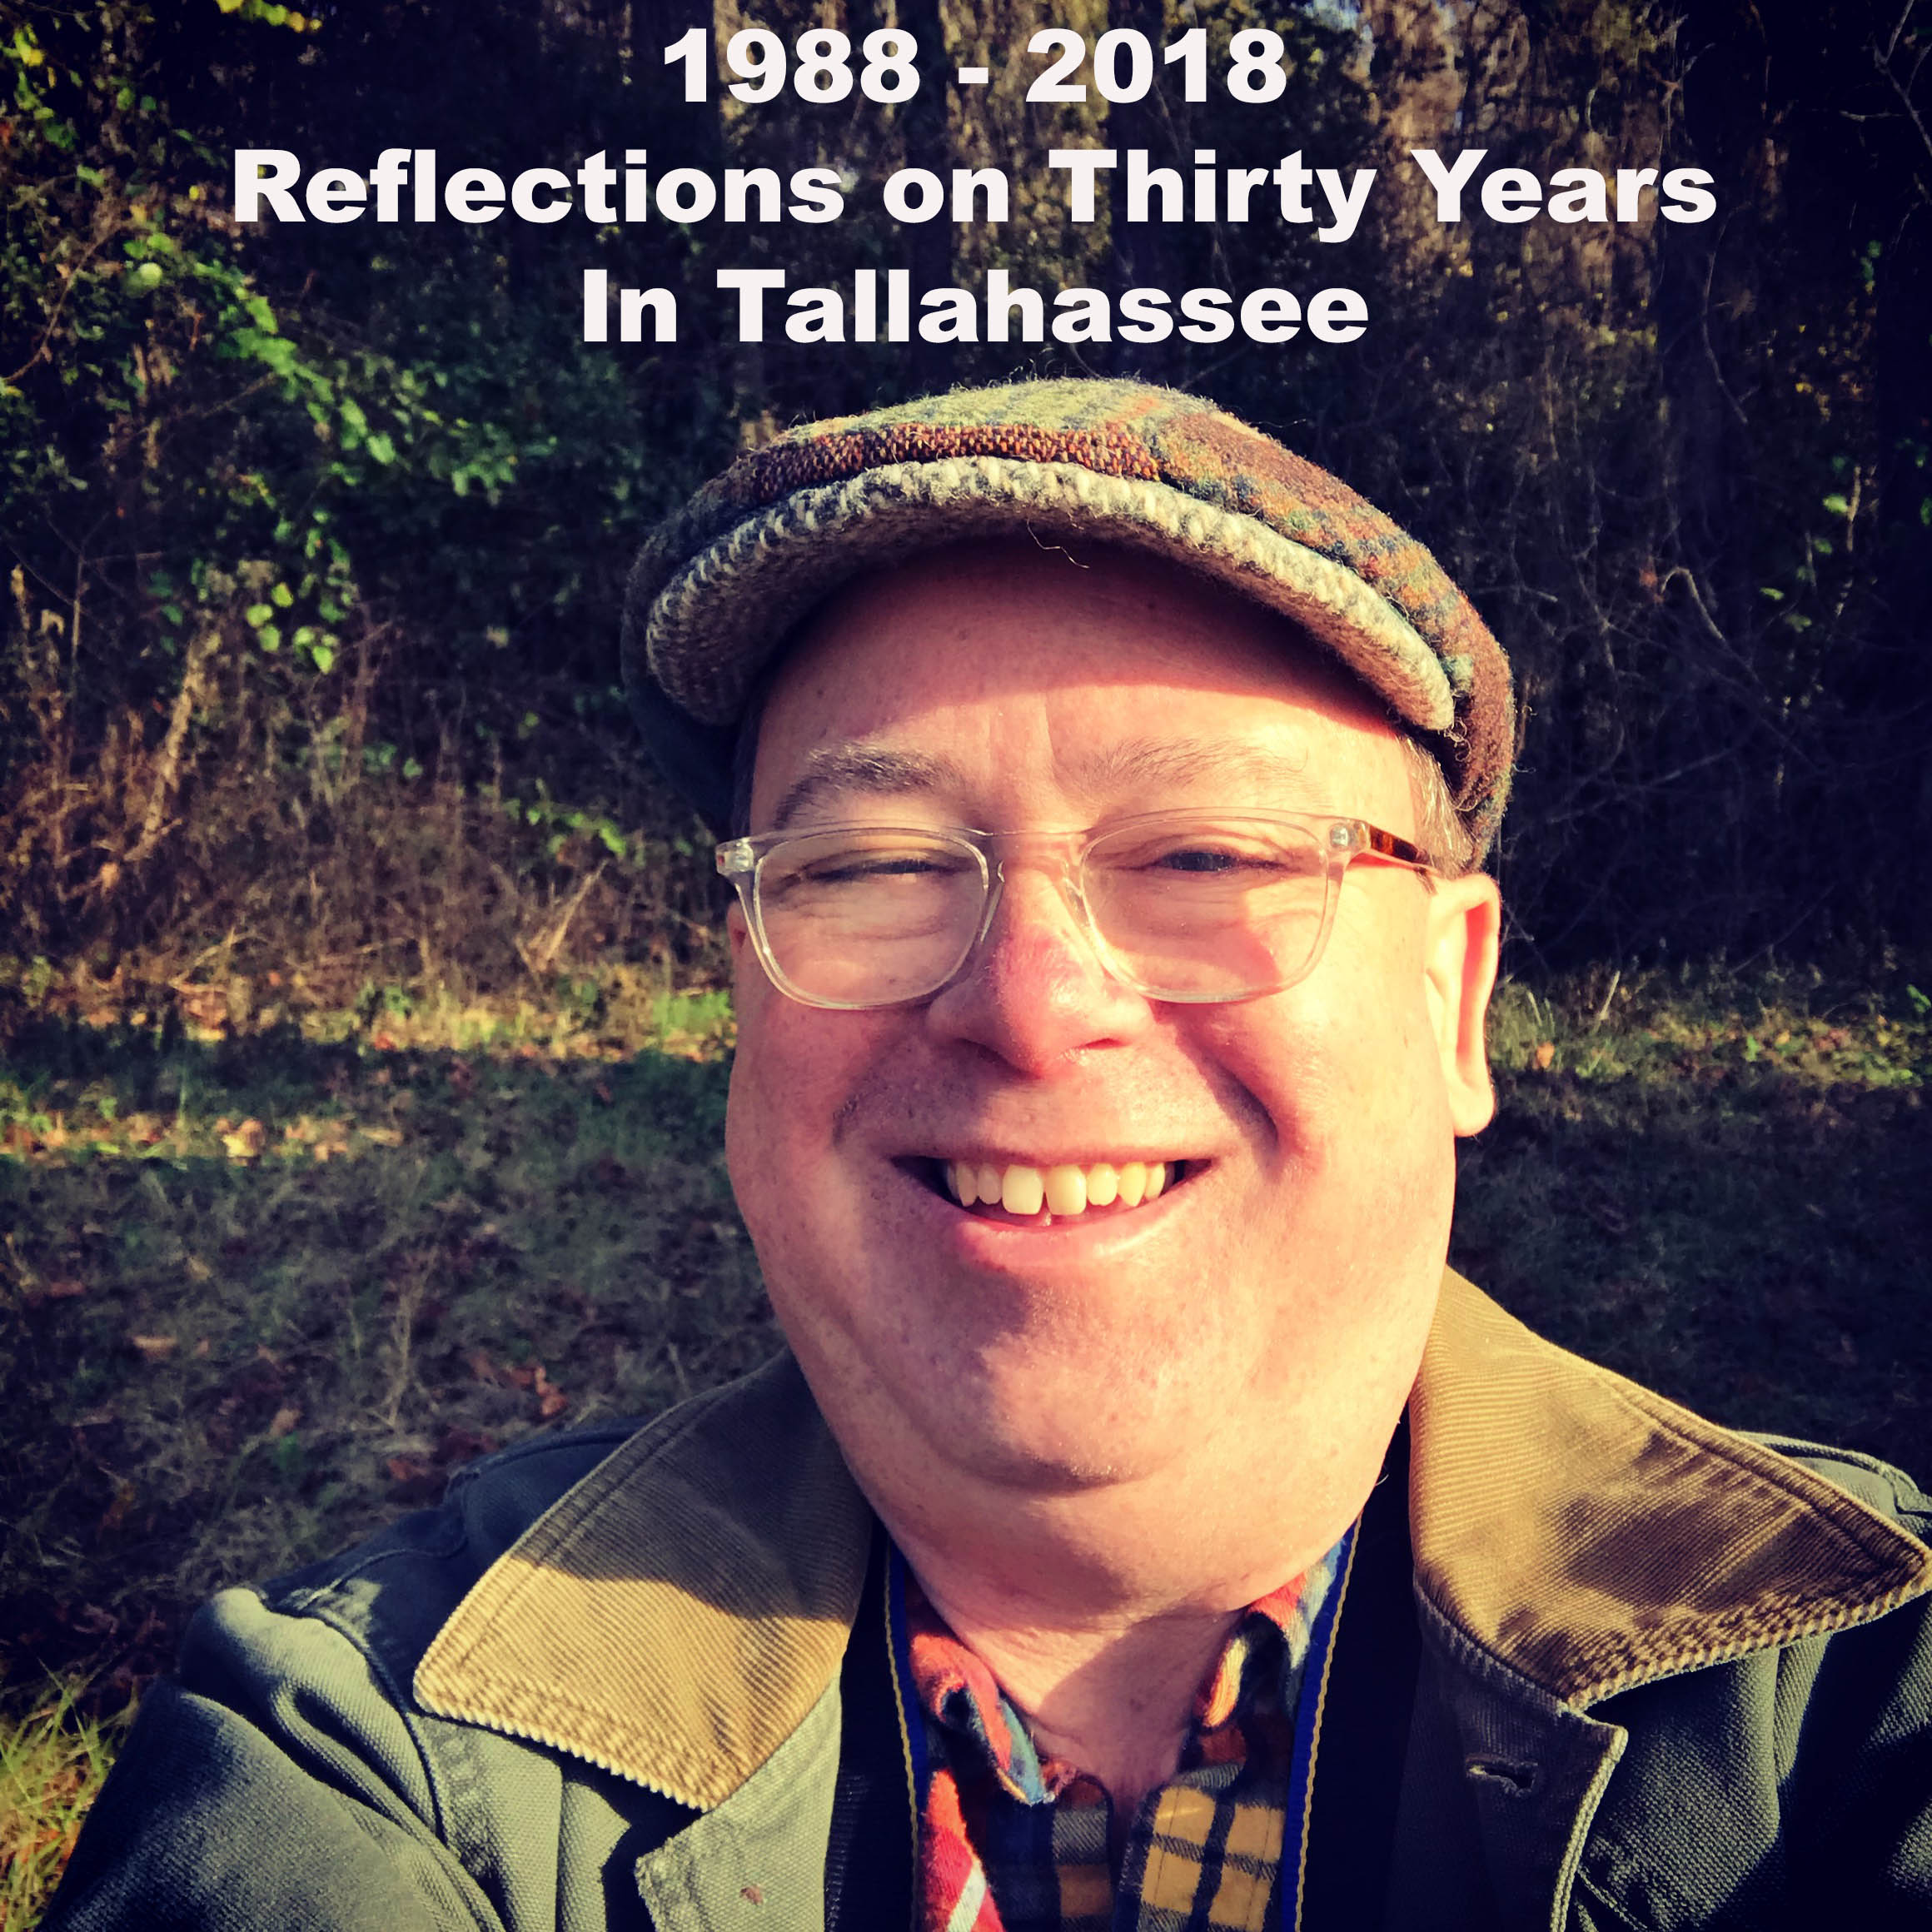 Reflections on 30 Years In Tallahassee